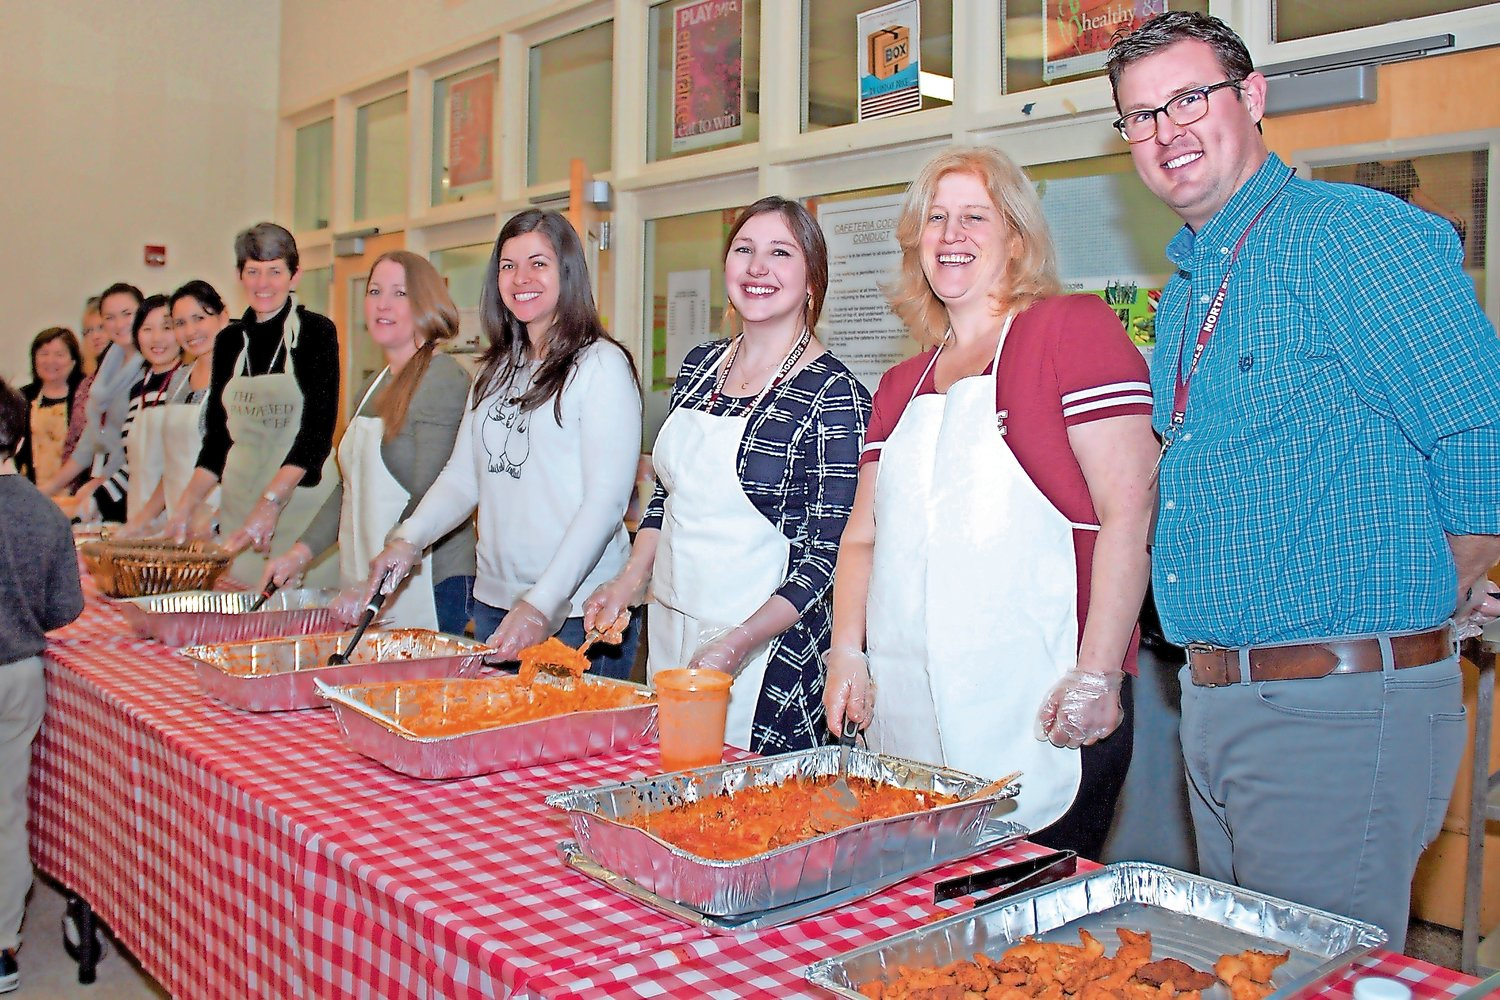 Nimmo far left, joined other faculty members to serve food to families at the school's annual pasta and game night event.